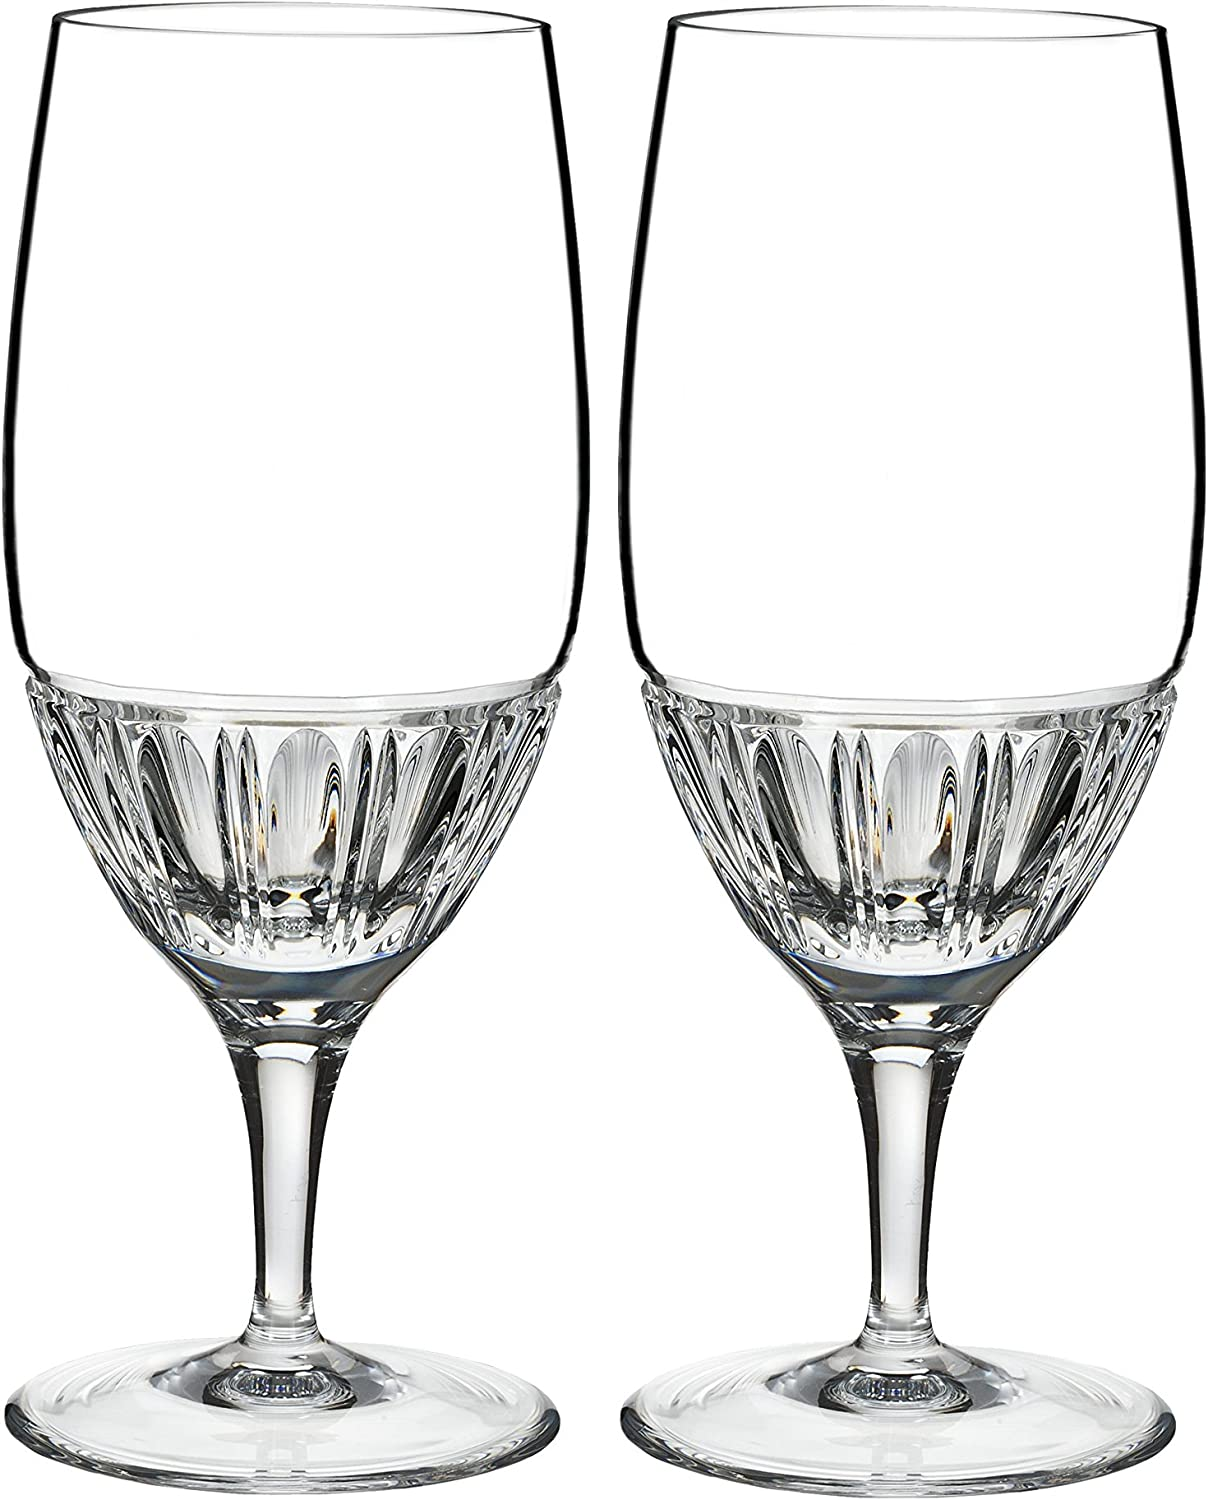 Marquis by Waterford Addison Iced Beverage Glasses, 13 oz, Clear